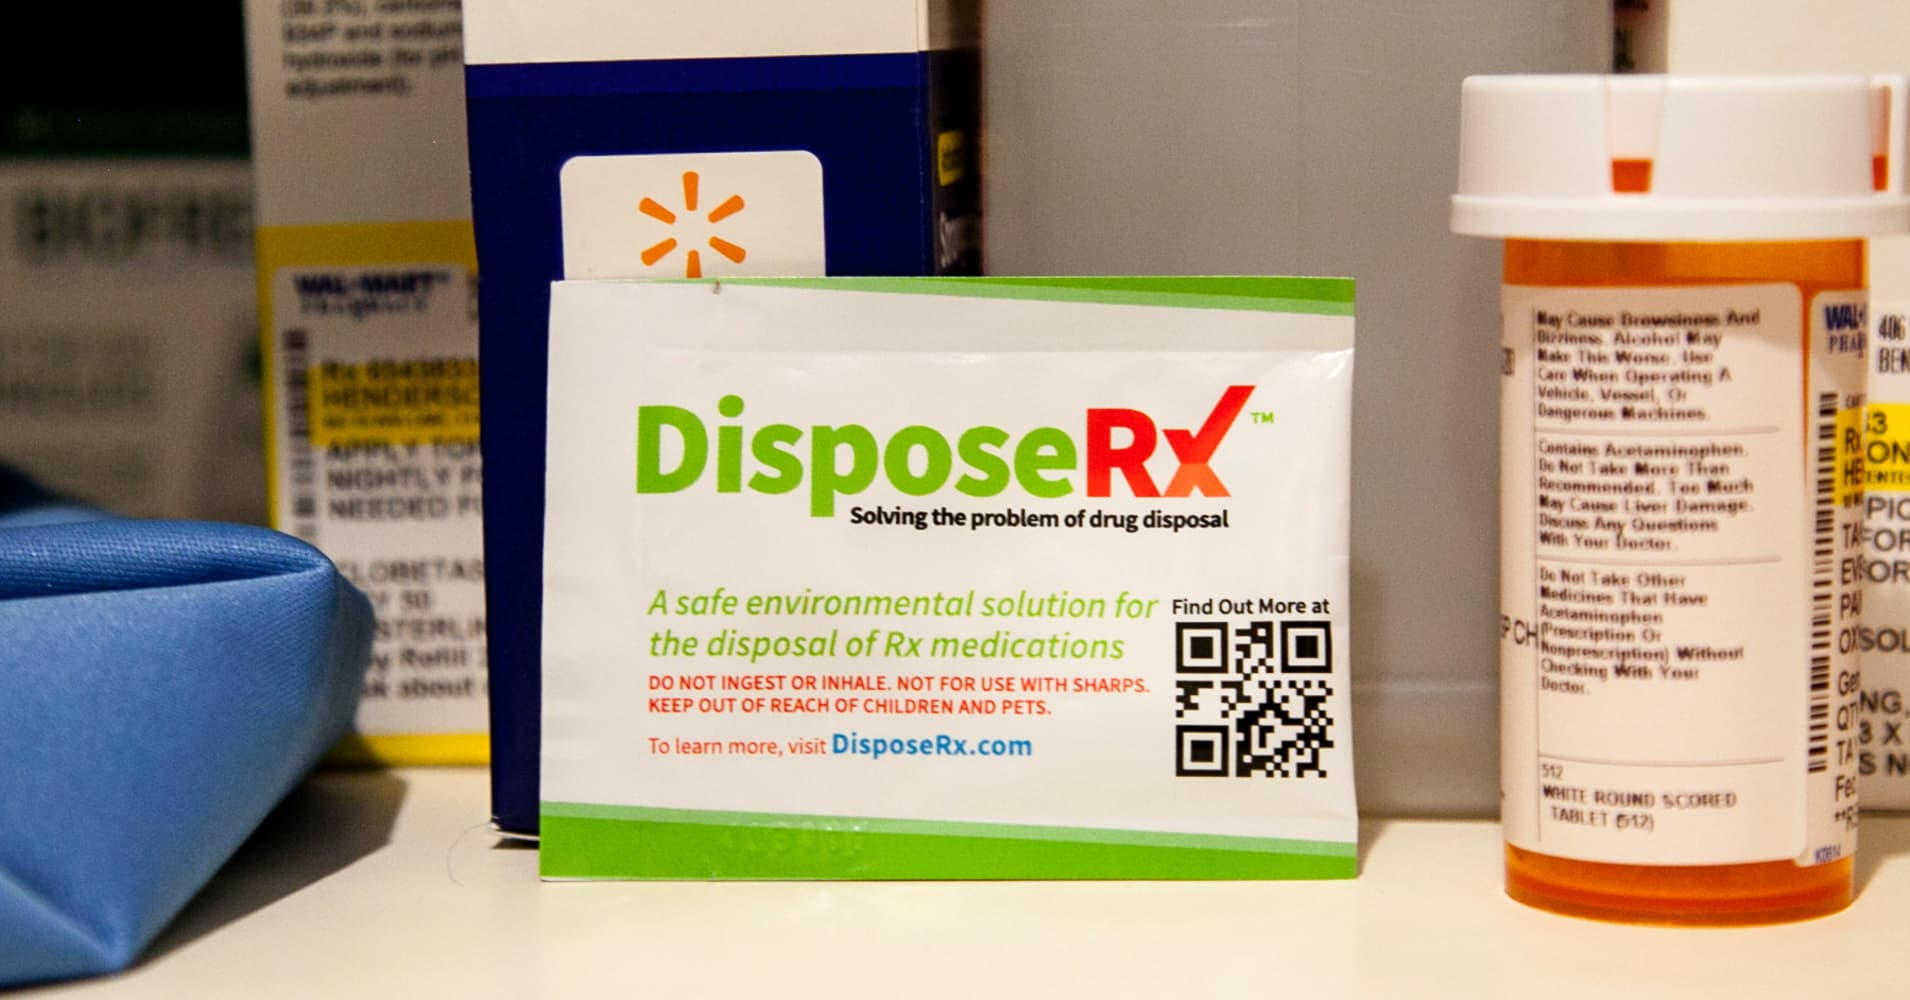 Walmart offers free opioid disposal product